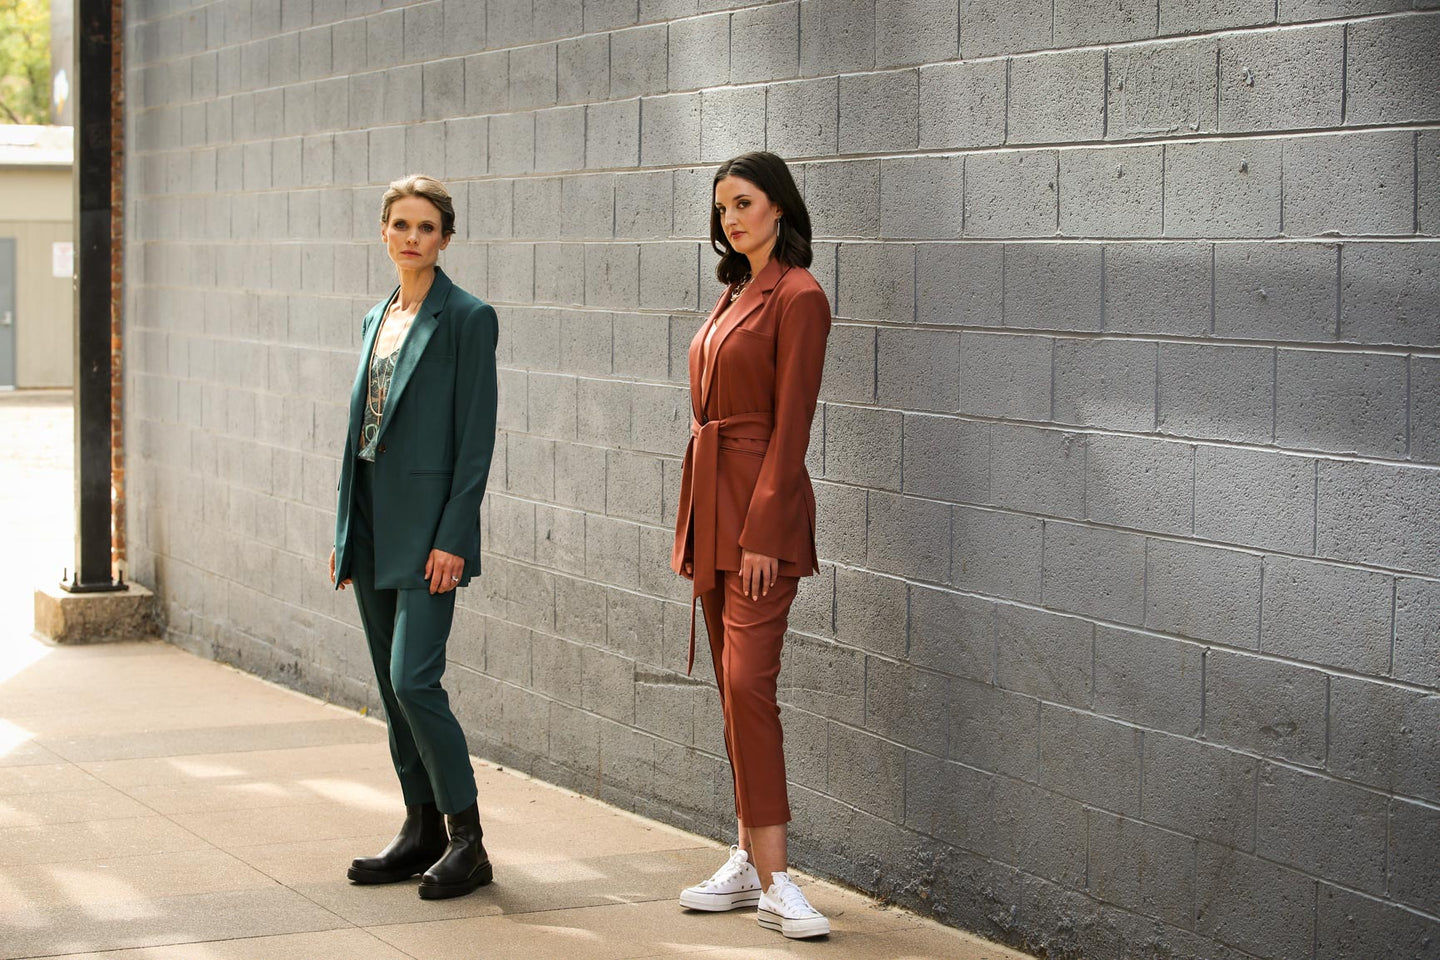 Womens workwear suiting in Italian wool, two models wearing Hollis Blazer and Livvy Pants by Glenn + Glenn.